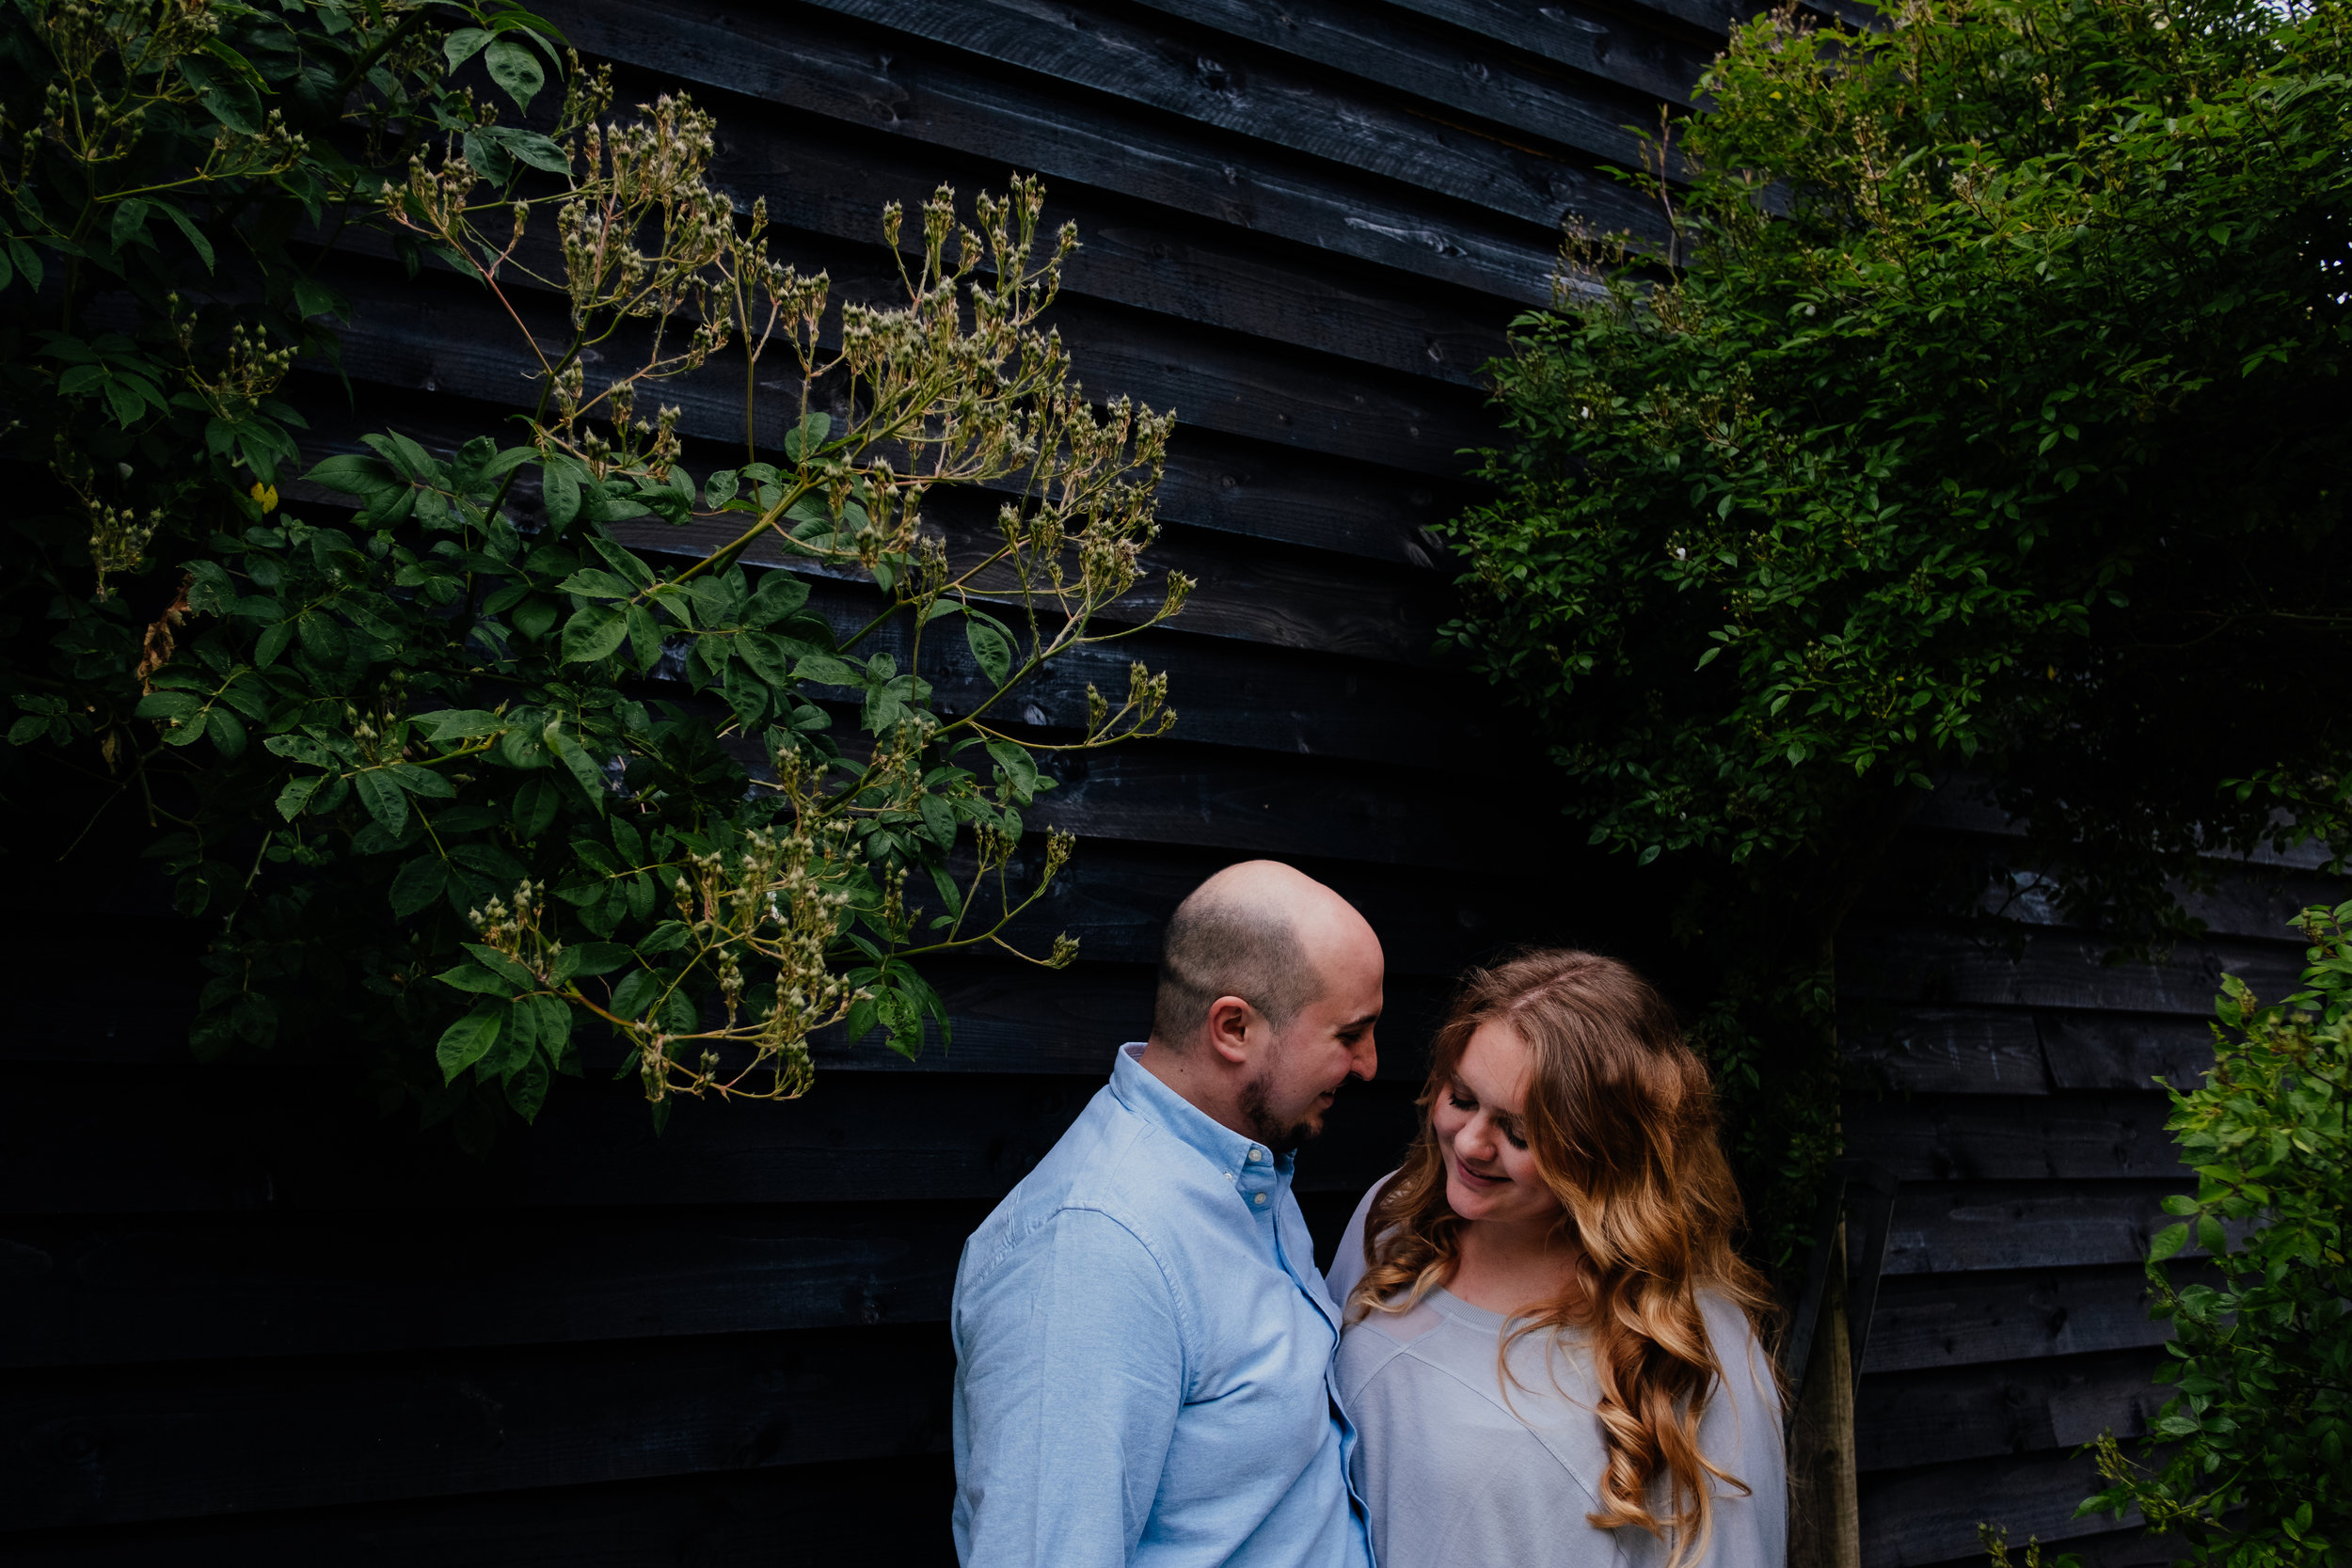 West Sussex wedding photography | Couple shoot at Rumbolds Barn wedding